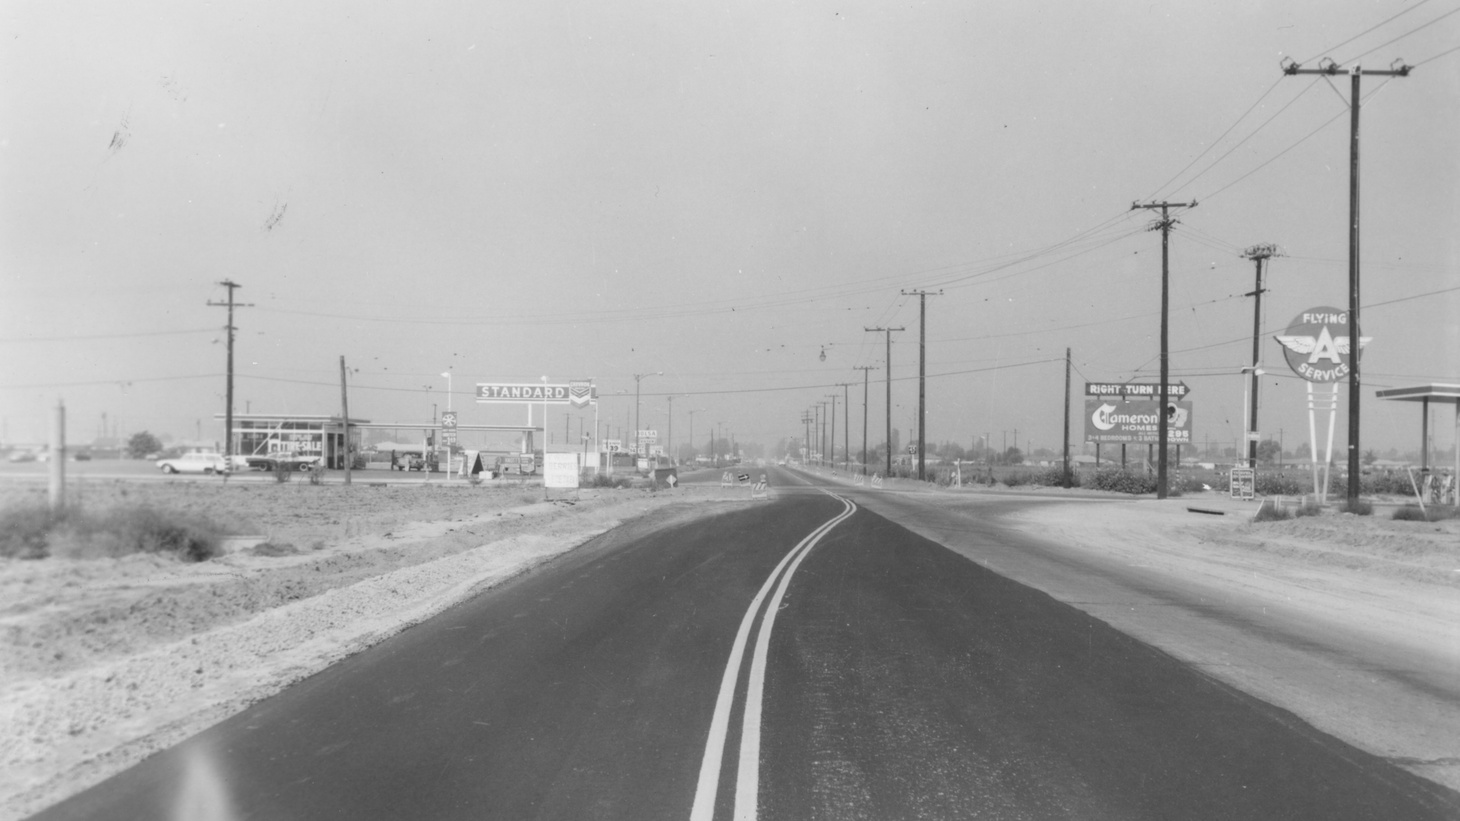 Bolsa Ave. in Westminster, looking west at Magnolia St., Aug 1966.